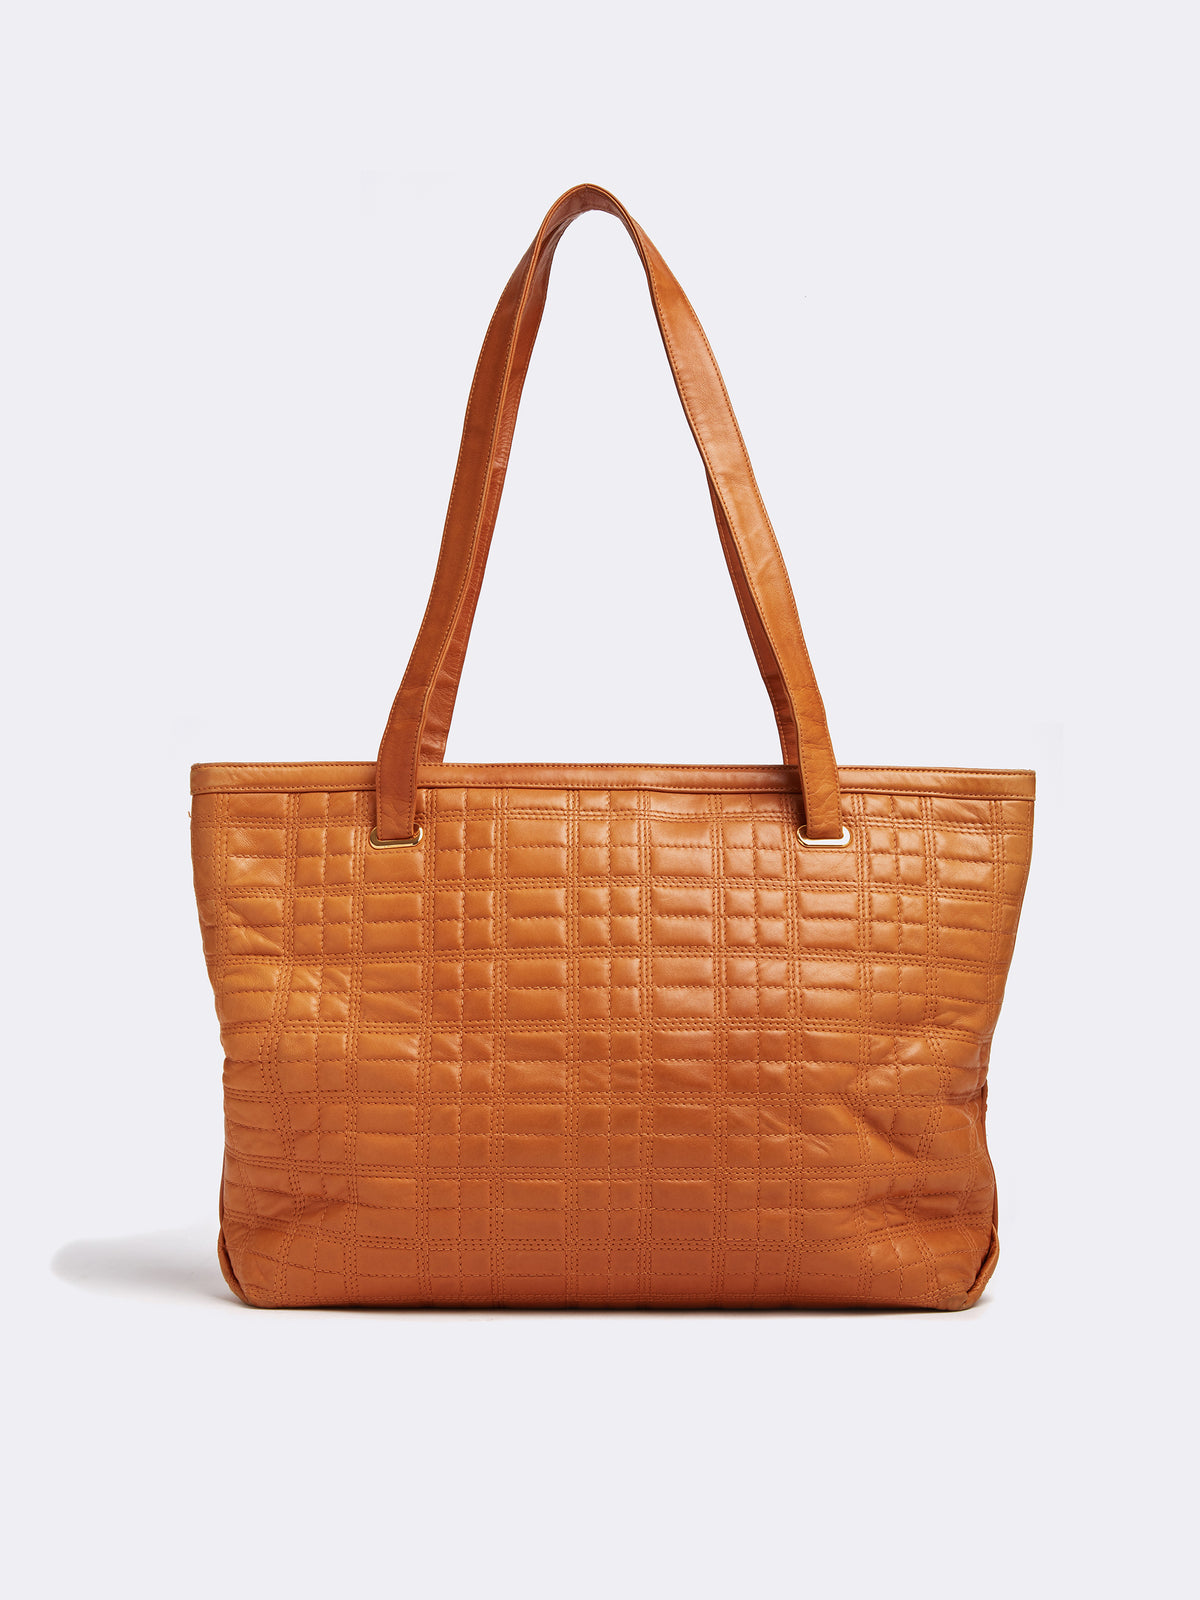 Vintage Quilted Leather Tote Bag